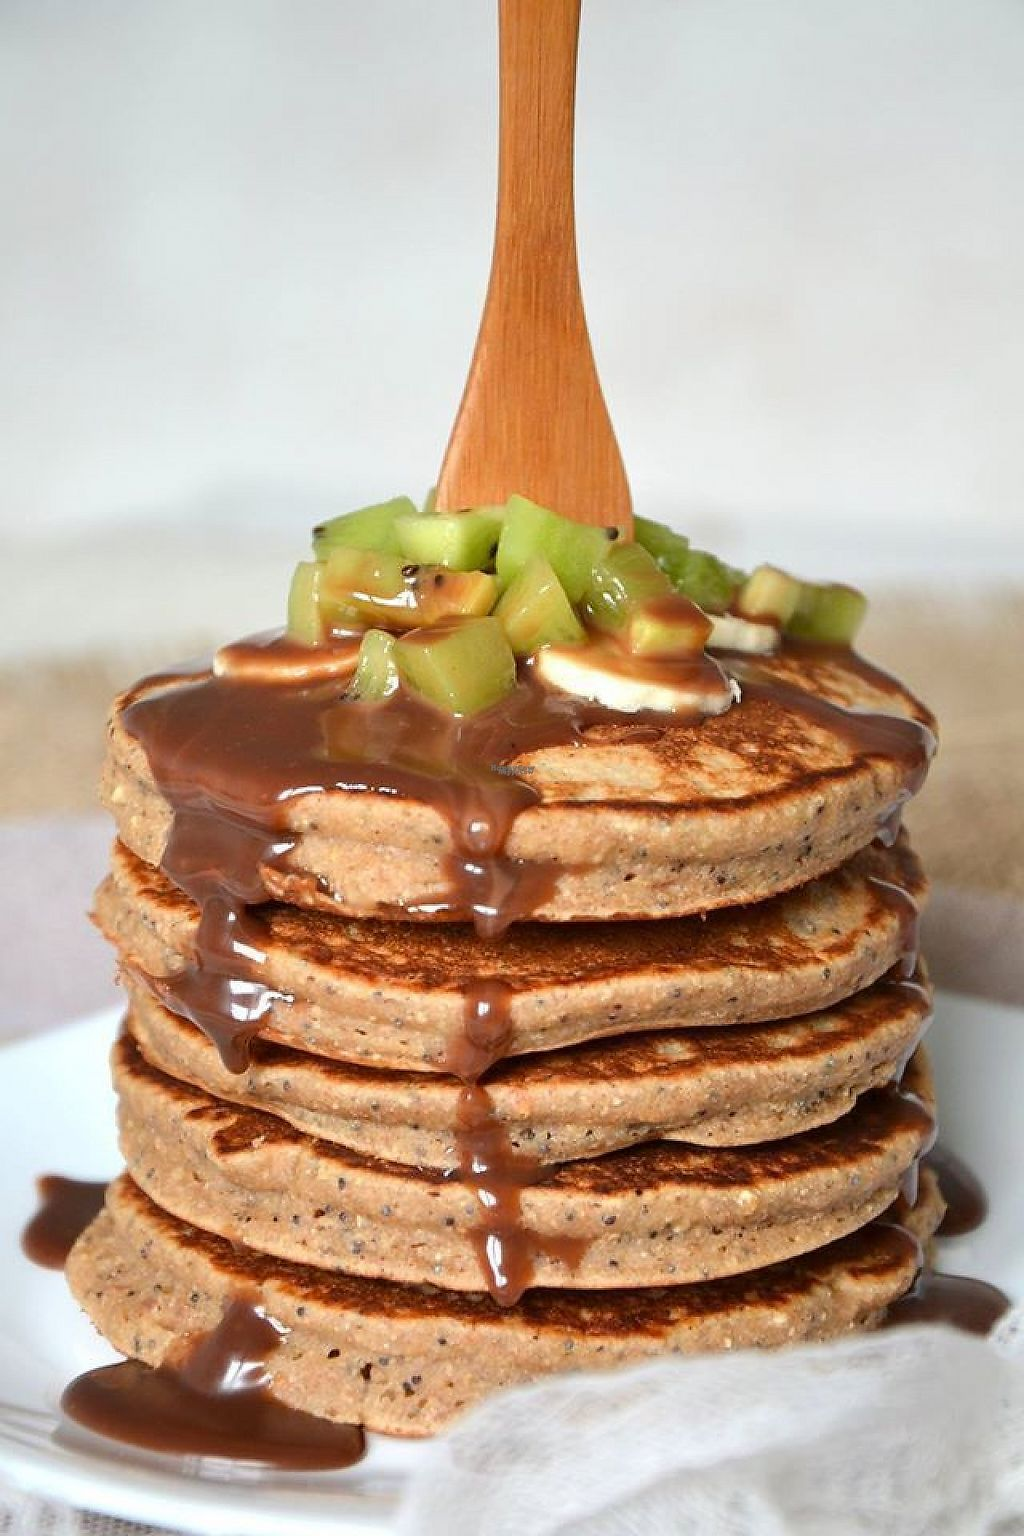 """Photo of La Vie Claire  by <a href=""""/members/profile/community"""">community</a> <br/>vegan pancakes  <br/> February 4, 2017  - <a href='/contact/abuse/image/71970/221844'>Report</a>"""